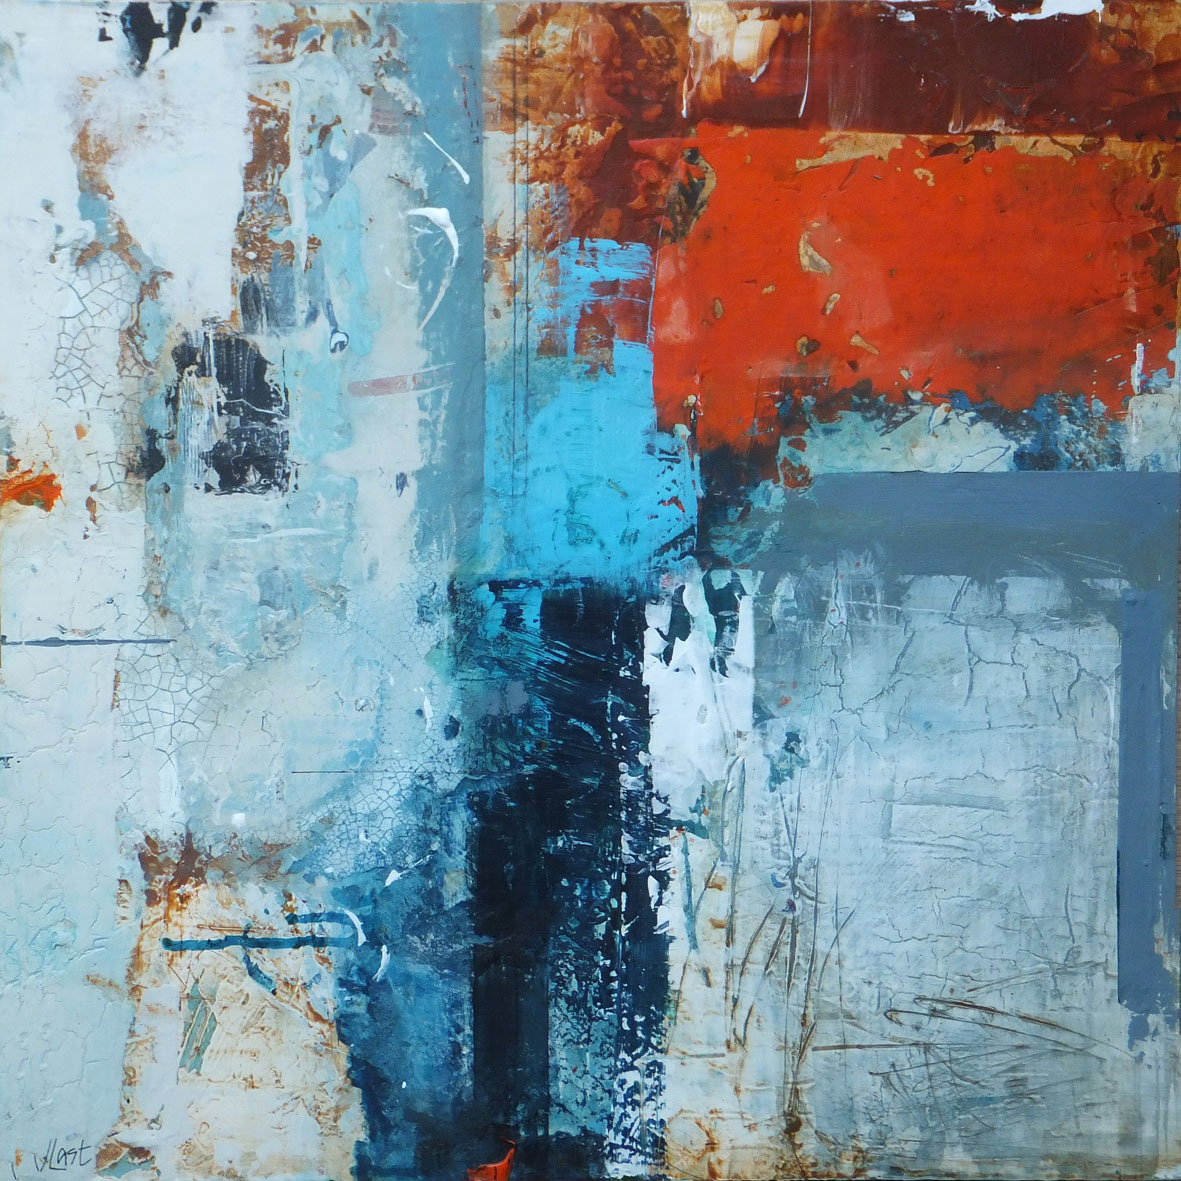 "<span class=""link fancybox-details-link""><a href=""/artists/66-joanne-last/works/6986-joanne-last-weathered-1-2020/"">View Detail Page</a></span><div class=""artist""><strong>Joanne Last</strong></div> <div class=""title""><em>Weathered 1</em>, 2020</div> <div class=""signed_and_dated"">signed on back</div> <div class=""medium"">Acrylic on board</div> <div class=""dimensions"">h. 66 x w. 66 cm </div><div class=""price"">£1,050.00</div><div class=""copyright_line"">Ownart: £105 x 10 Months, 0% APR</div>"